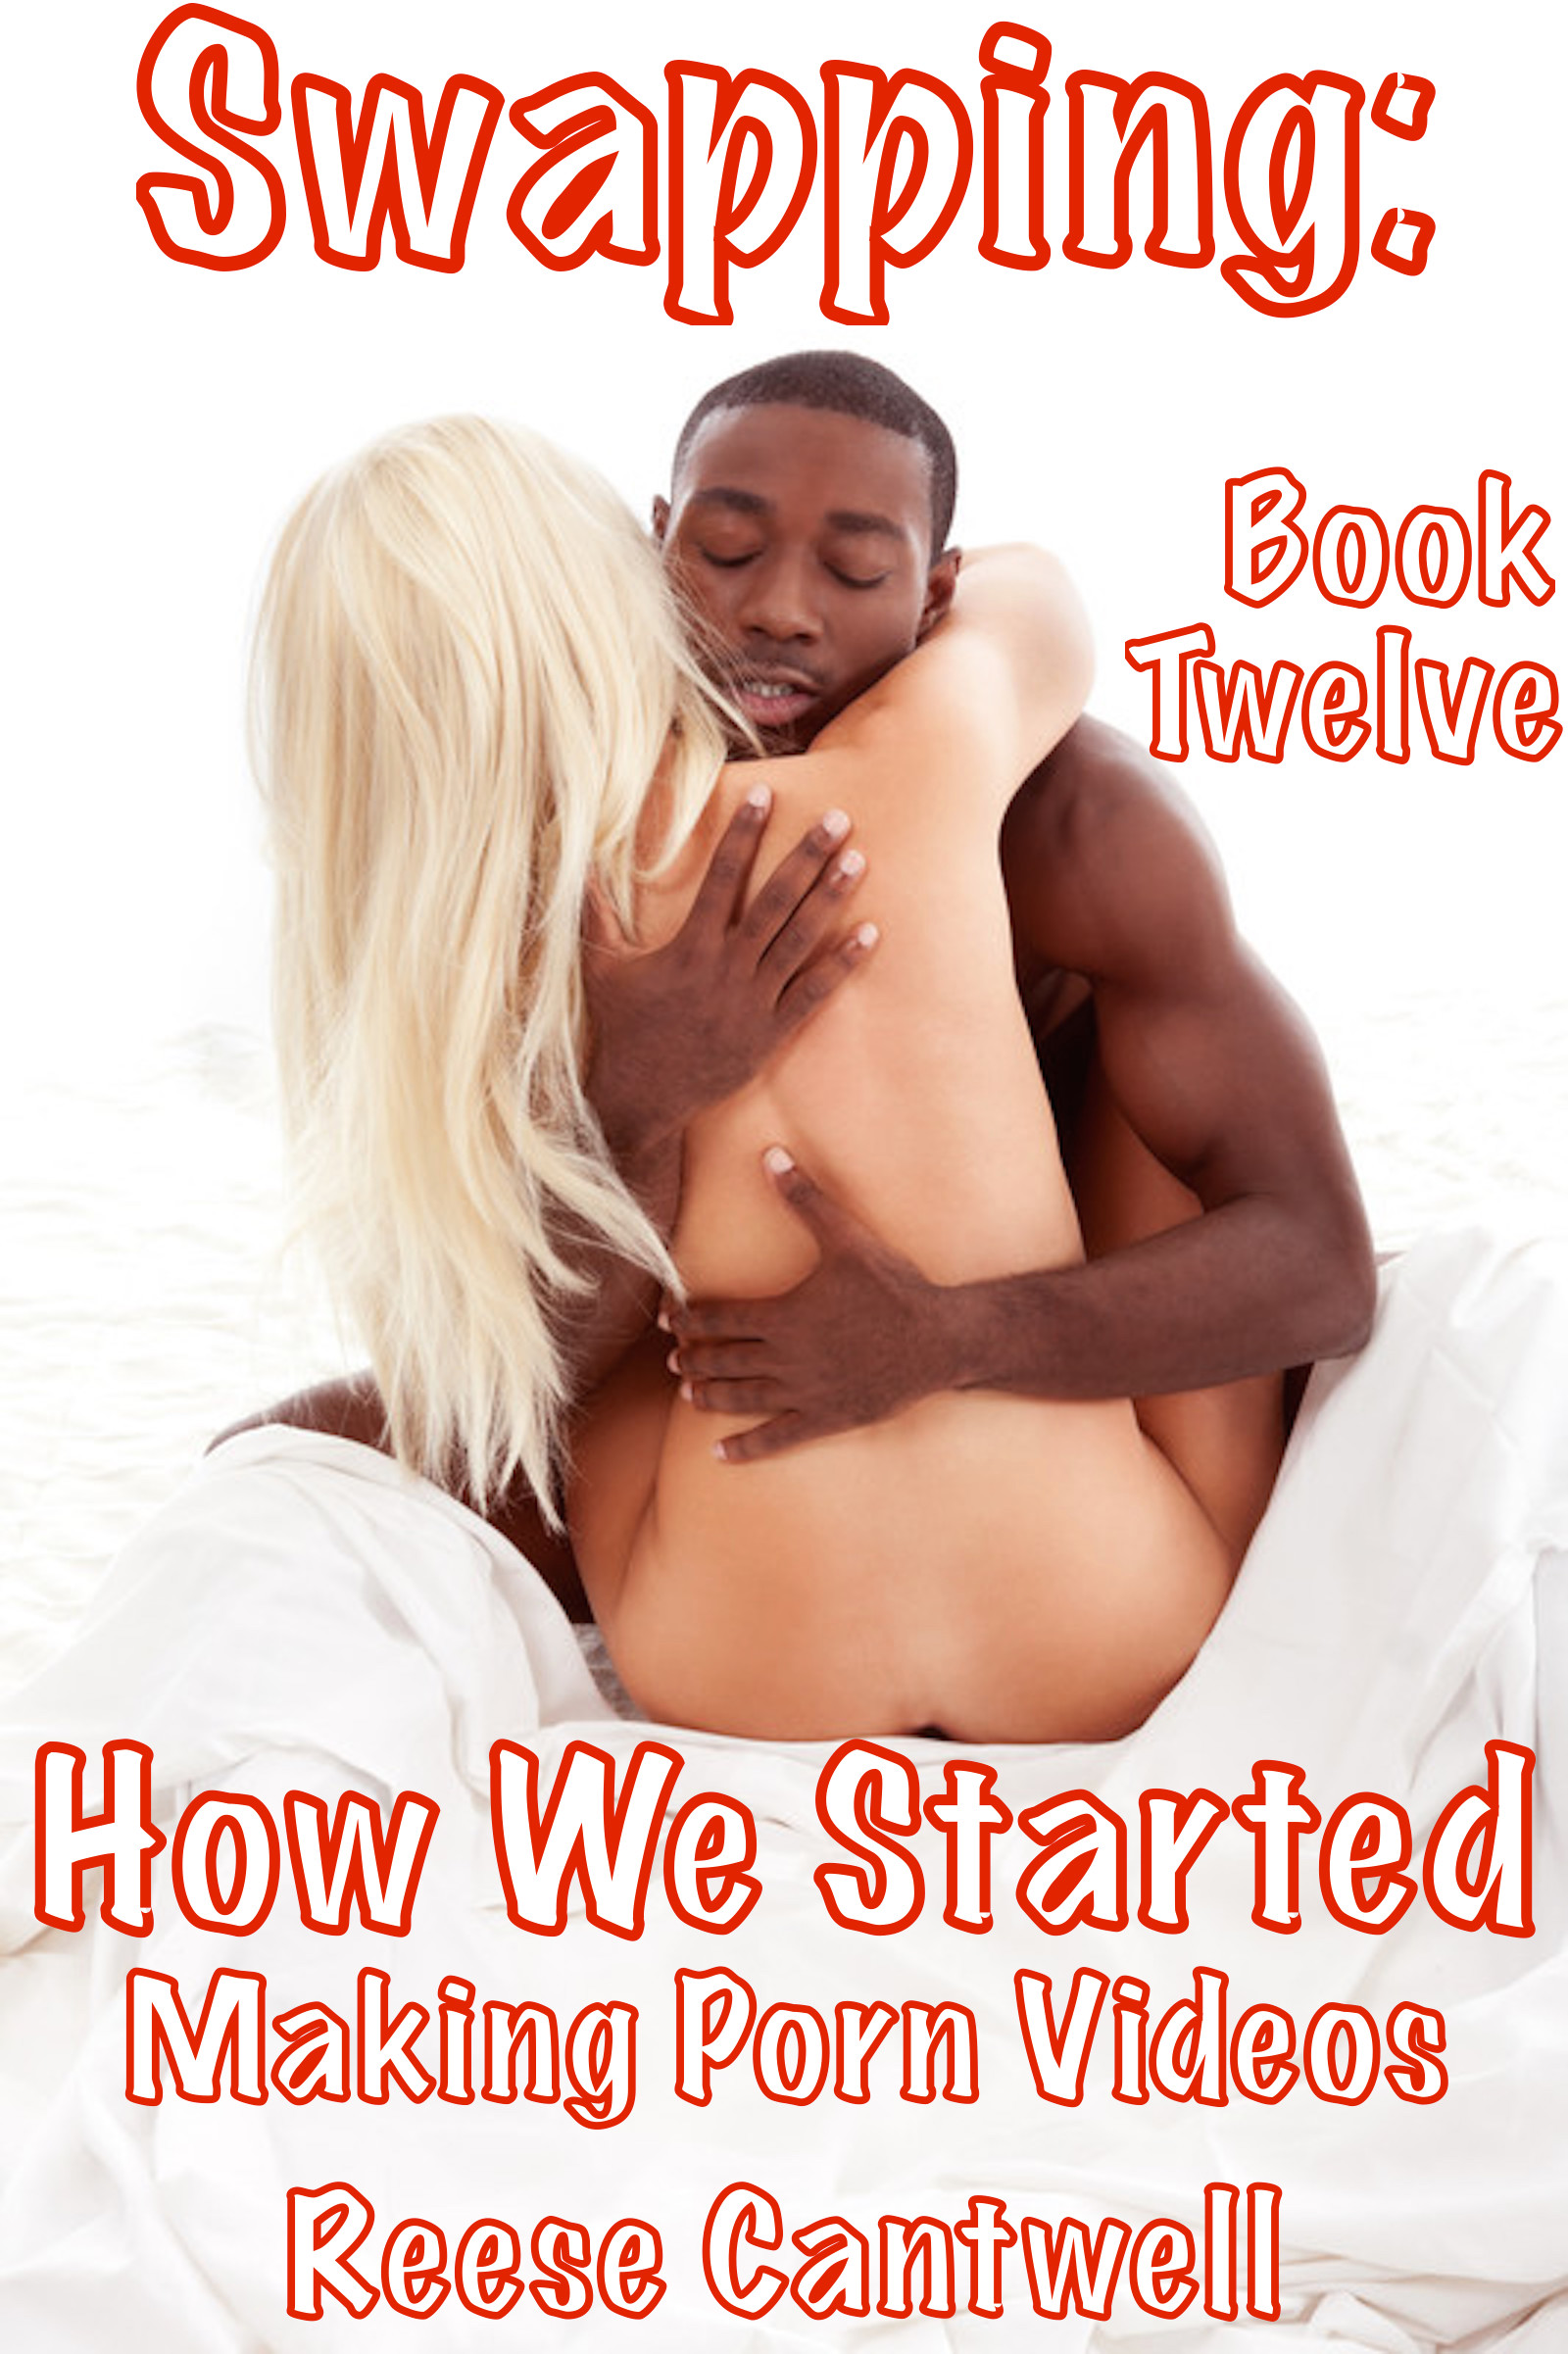 Swapping How We Started Making Porn Videos Book Twelve